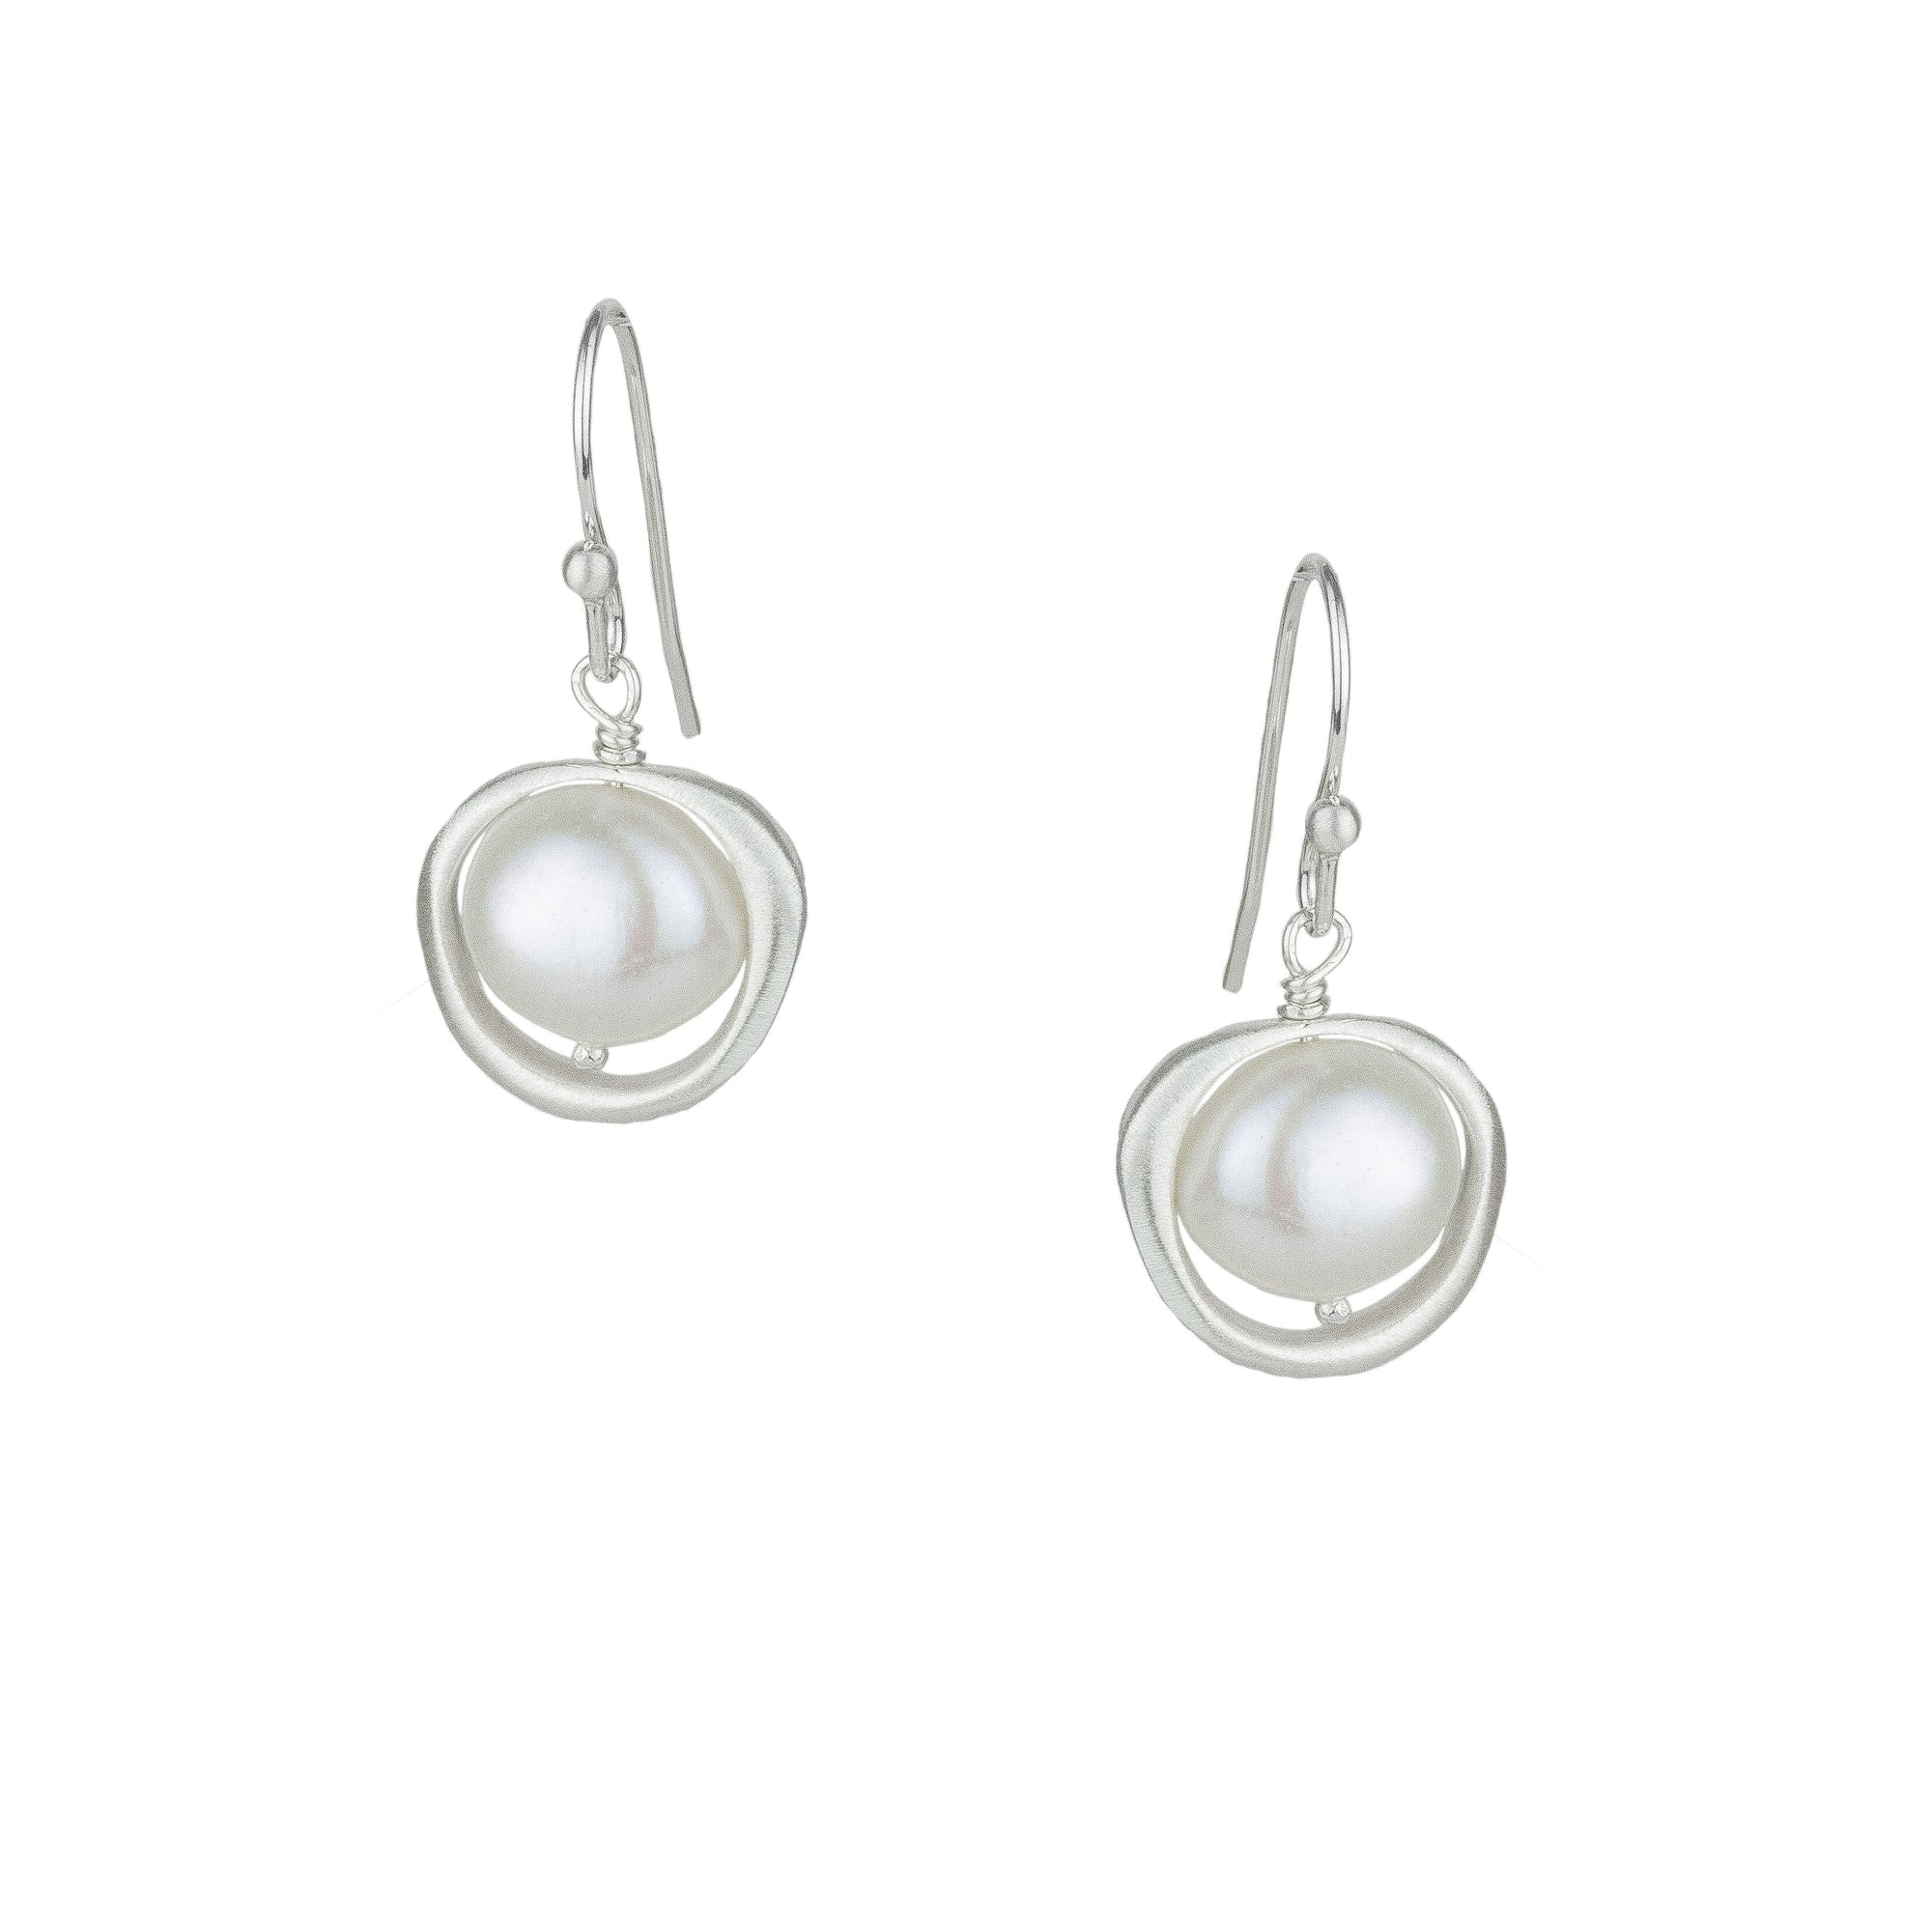 Organic Circle w Pearl Earrings